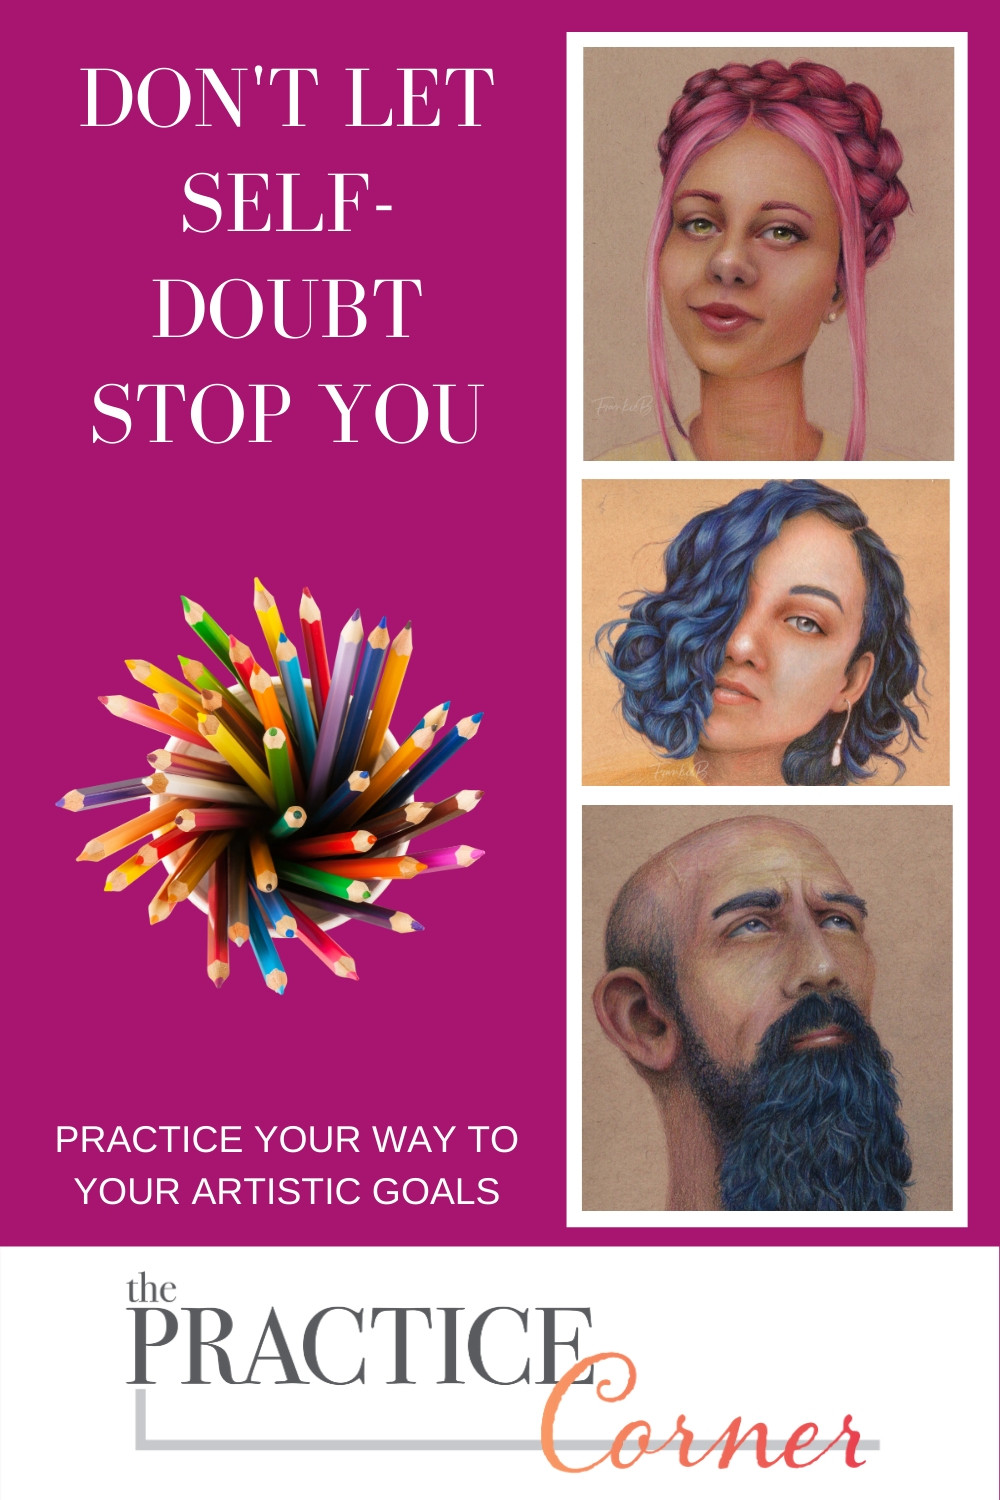 Don't Let Self Doubt Stop You | How to improve your coloring | What to practice with Copic Markers | What to practice with colored pencils | what to practice to improve my coloring | #coloredpencil #coloredpencilpractice #copicmarker #copicmarkerpractice  #copiccoloring #coloredpencilcoloring #thepracticecorner